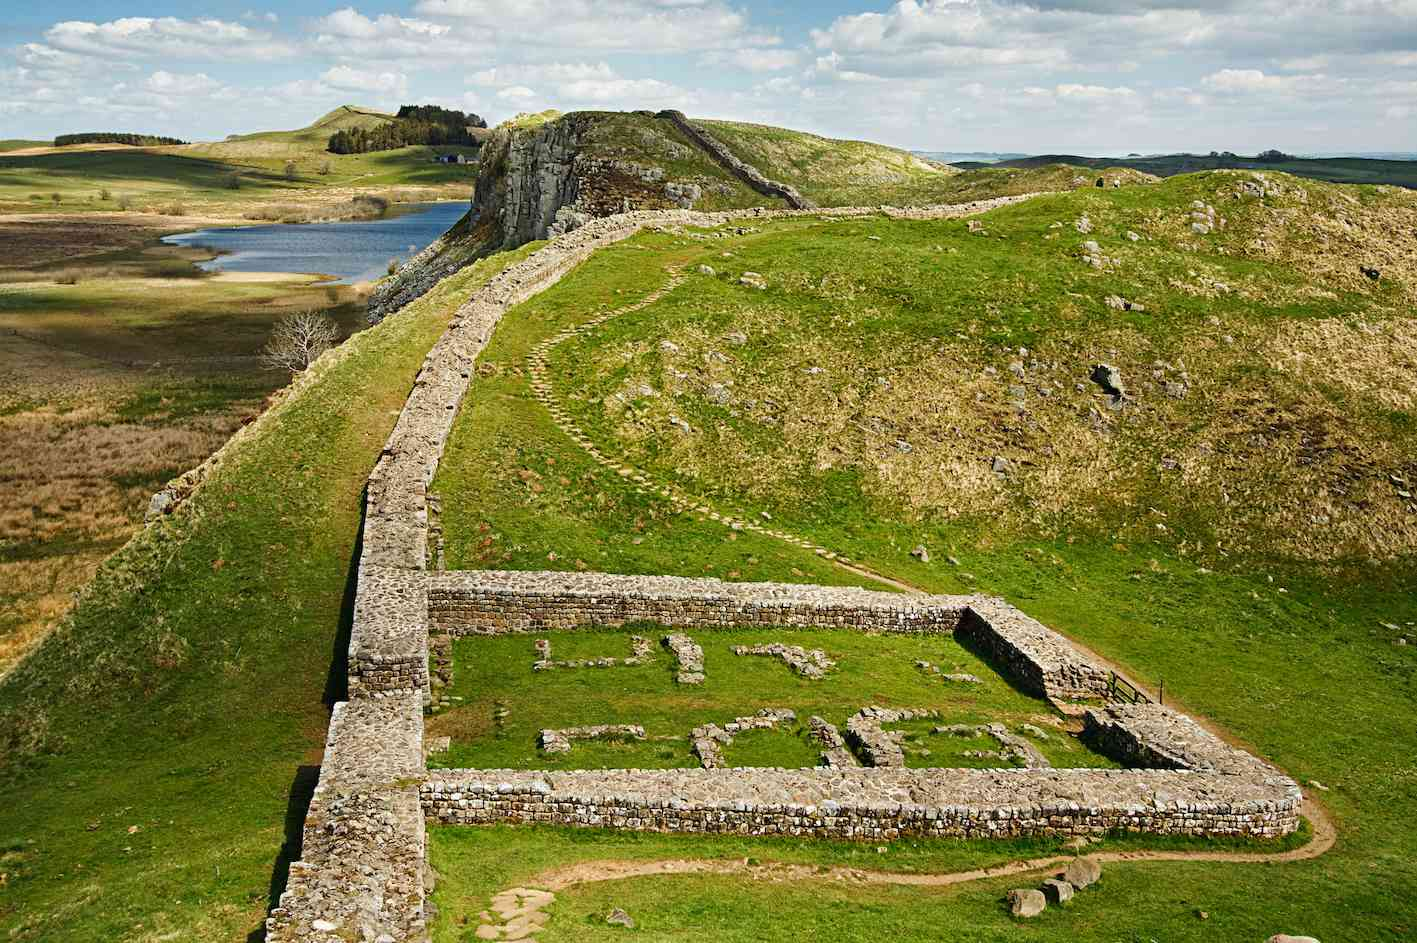 Aerial view of Hadrian's Wall and a ruined Roman castle, UK